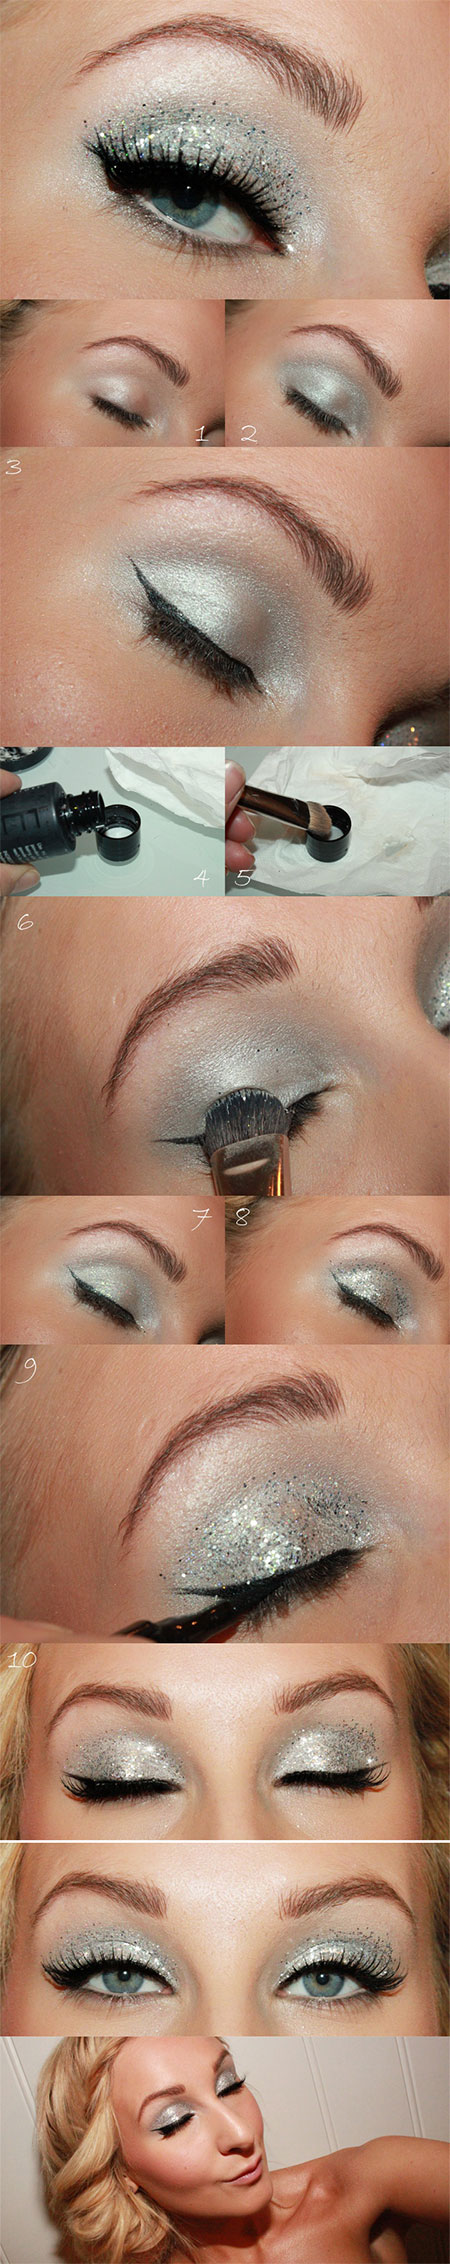 Easy-Step-By-Step-Christmas-Make-Up-Tutorials-For-Beginners-Learners-2014-3